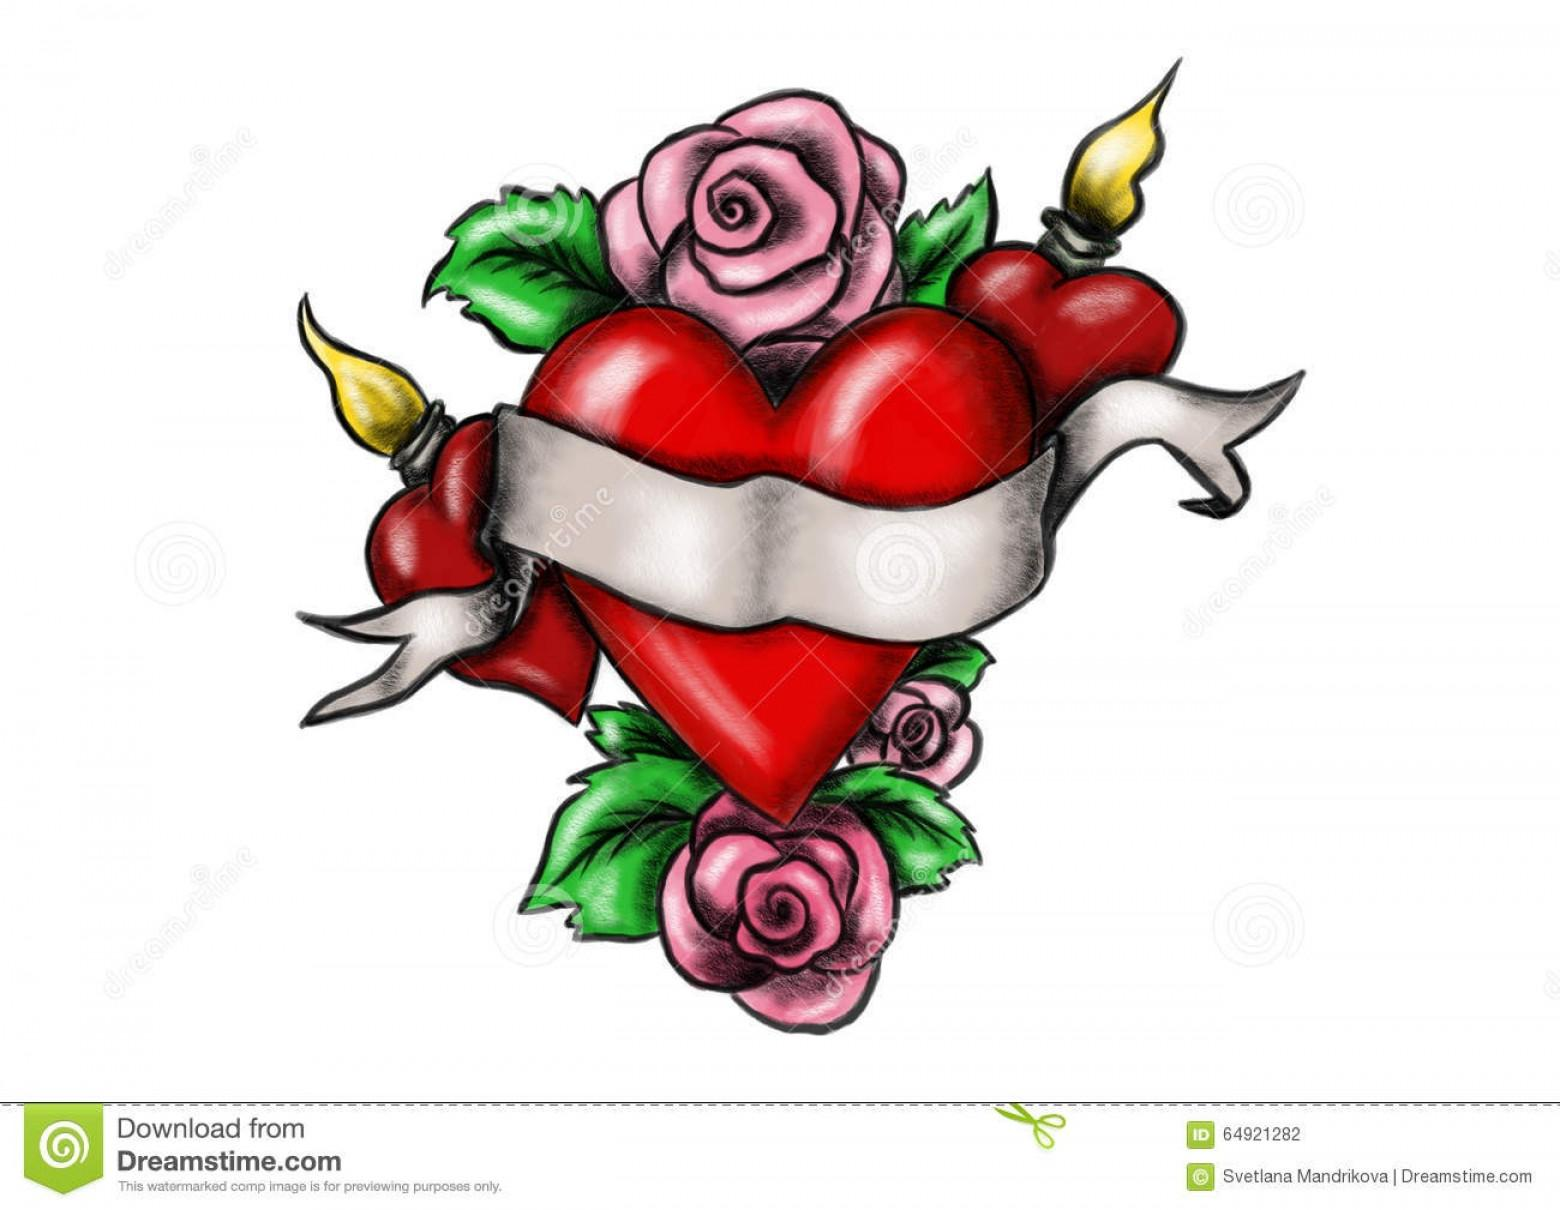 Drawn red rose ribbon drawing Best And With  Cdr